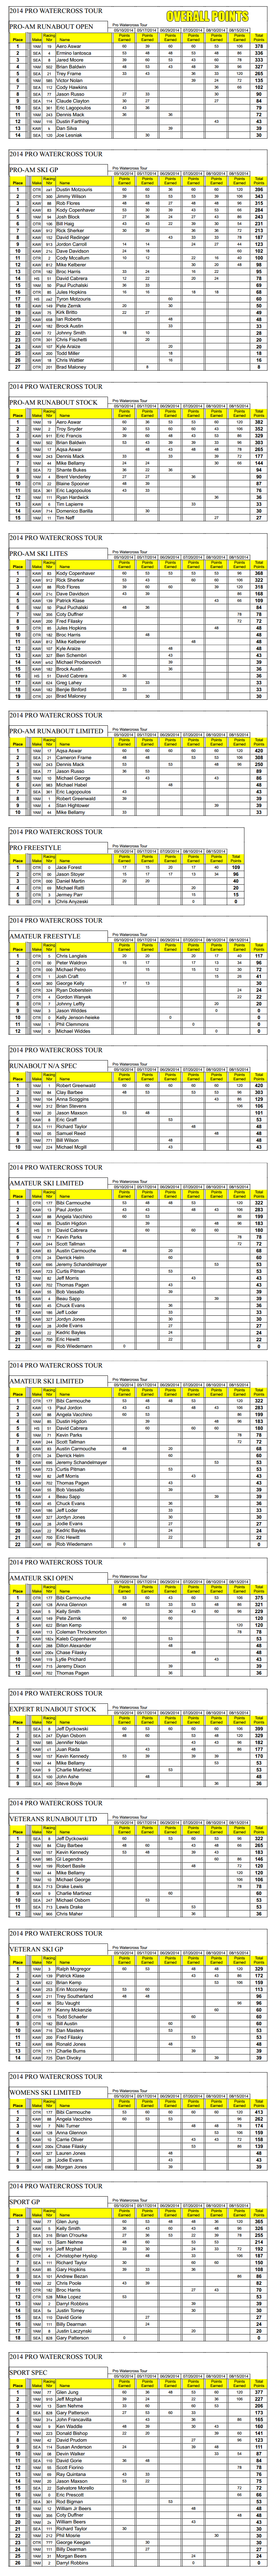 HT watercross tour overall points